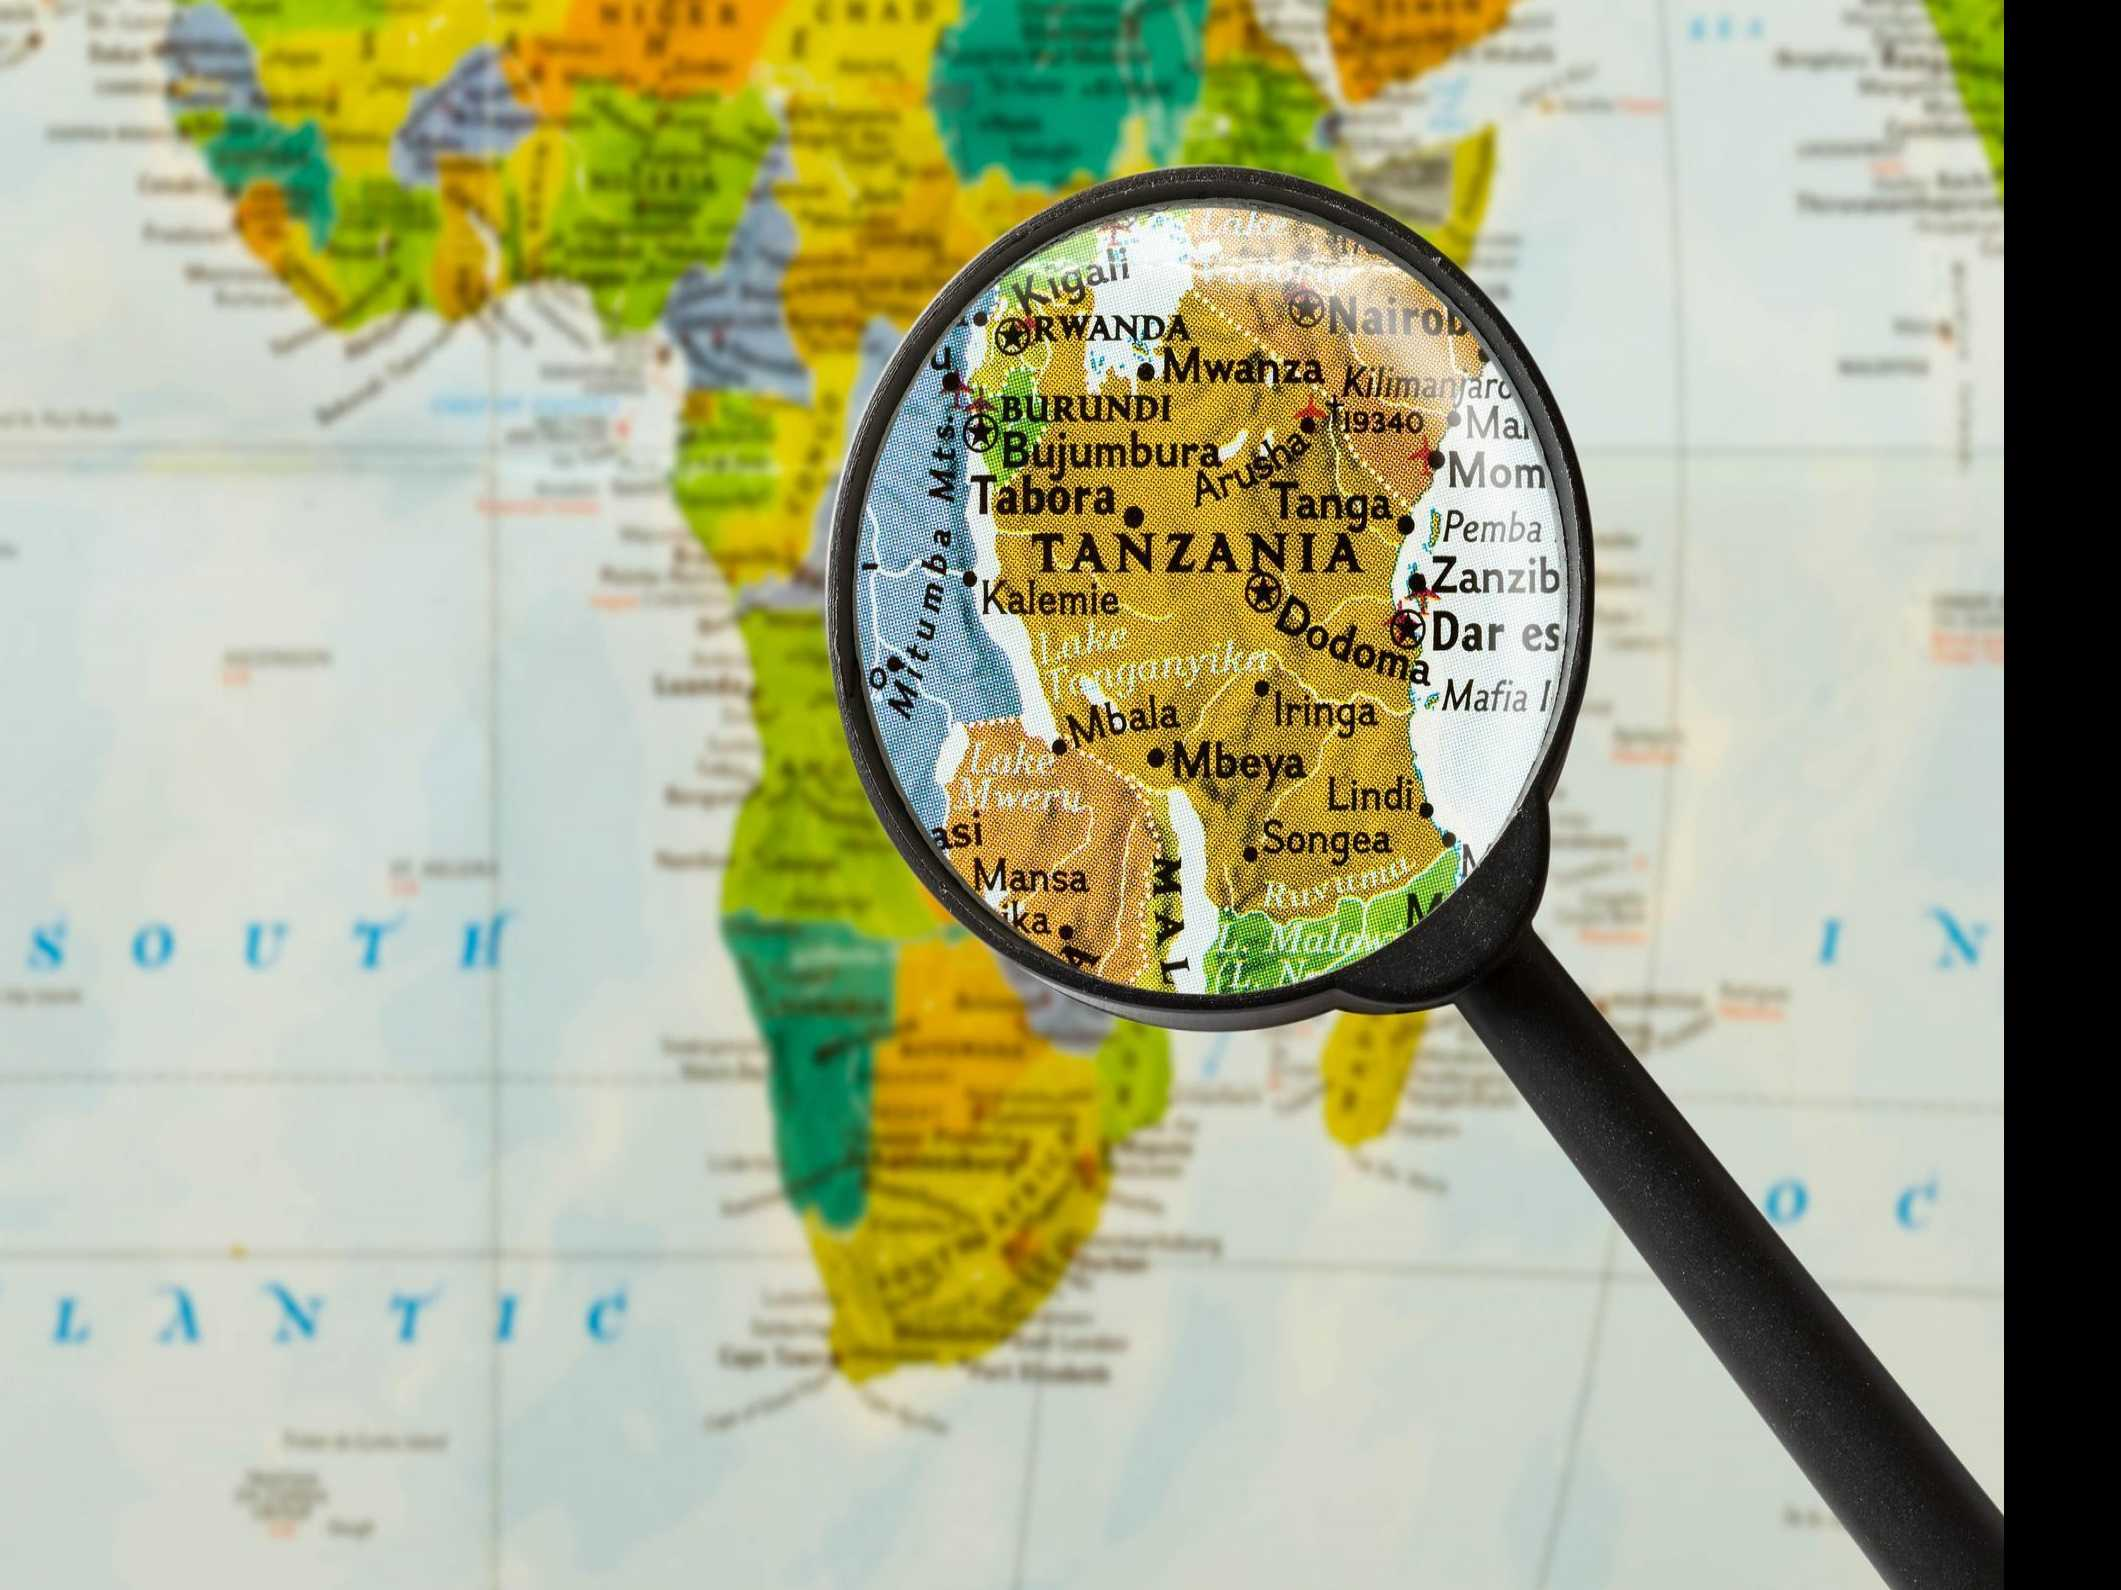 Denmark, Citing Human Rights, Withholds Some Aid to Tanzania